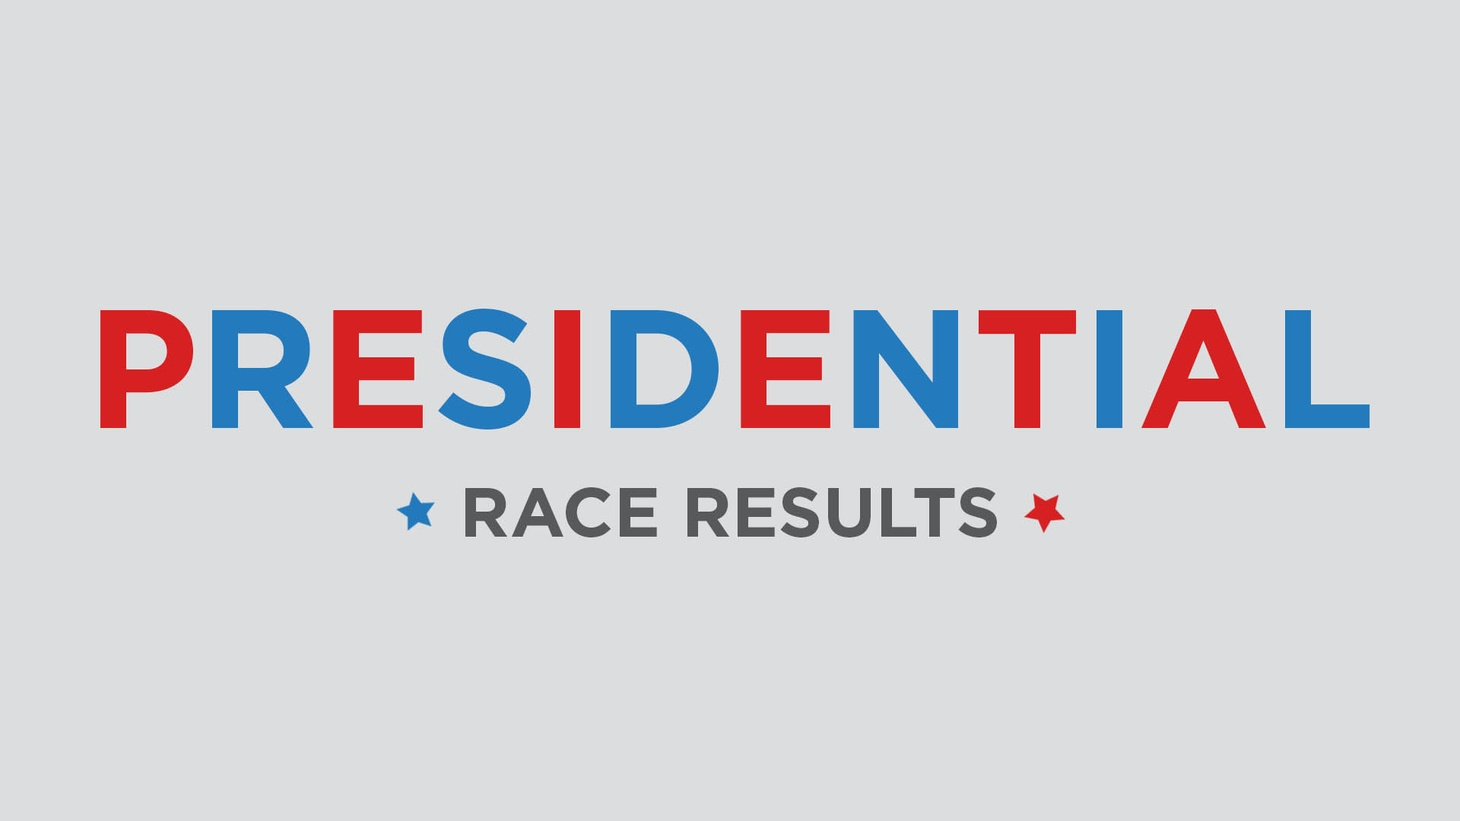 View live results for the 2020 U.S. presidential election.